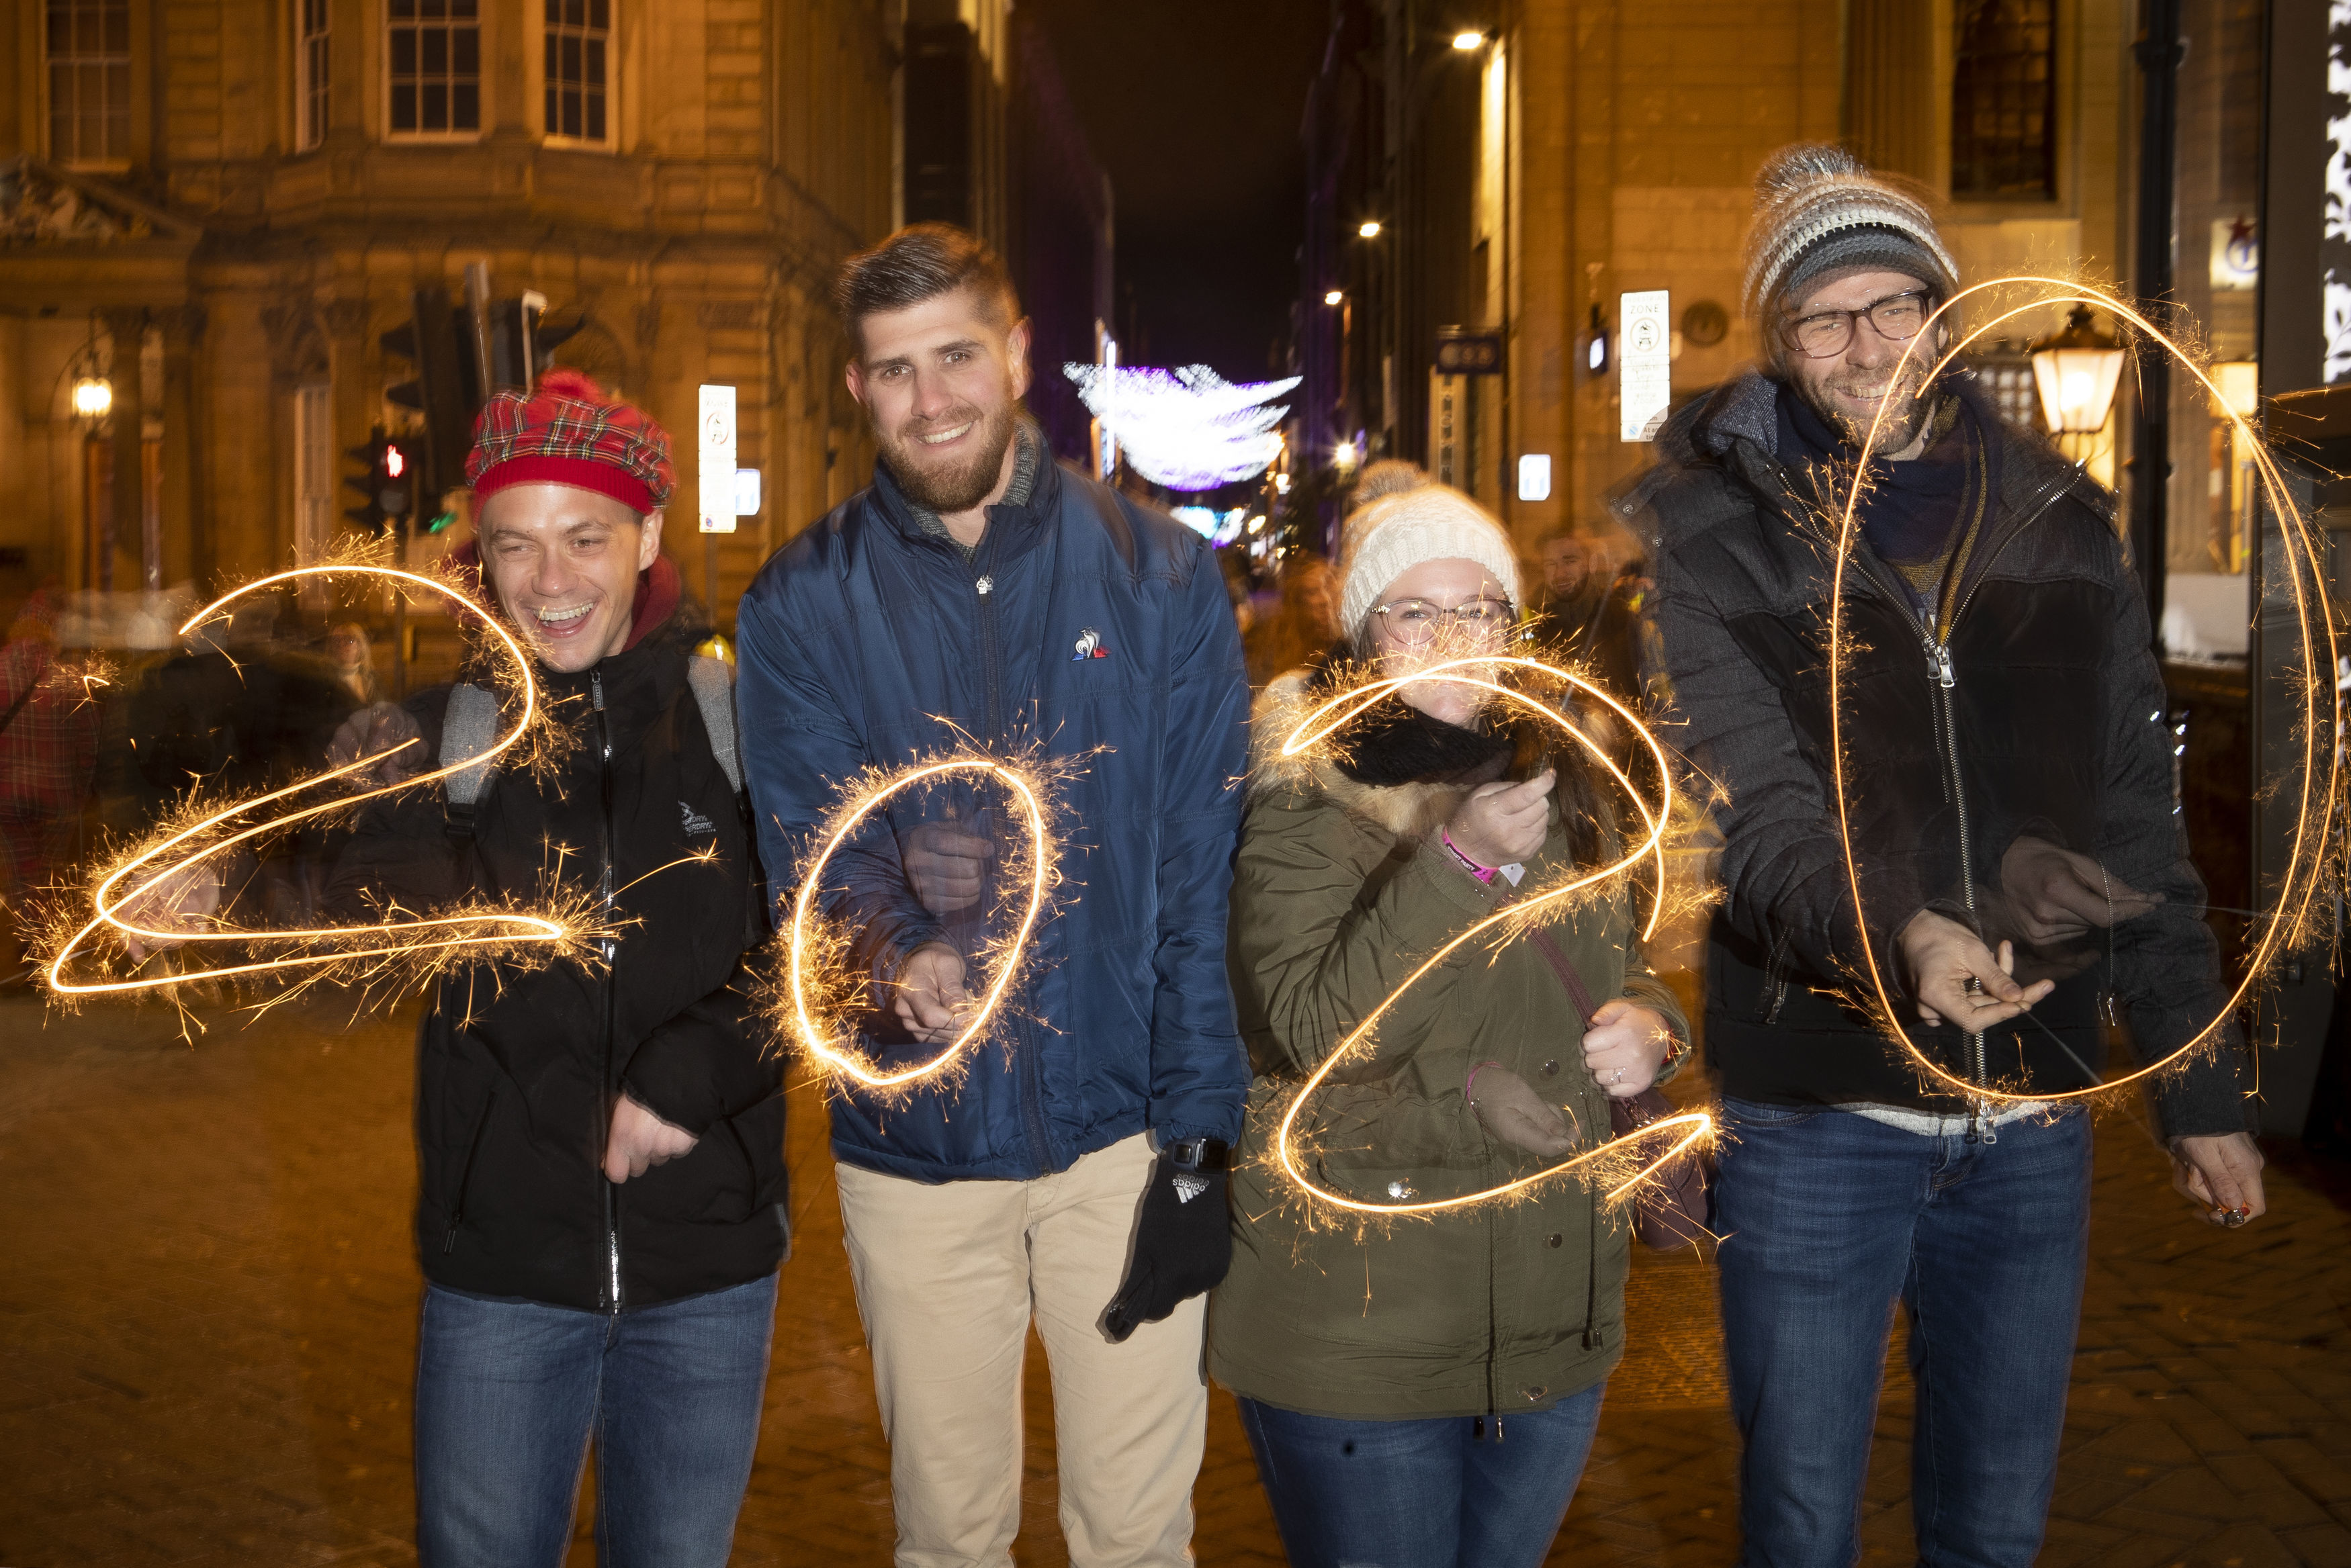 French tourists pose together with fireworks to make the sign of the New Year, left to right, Alexandre Levy, Johann Lemarquand, Rachel Ferrier and Benoit Jaouen, from Cherbourg, France, during the Hogmanay New Year celebrations in Edinburgh, Scotland, on December 31, 2019